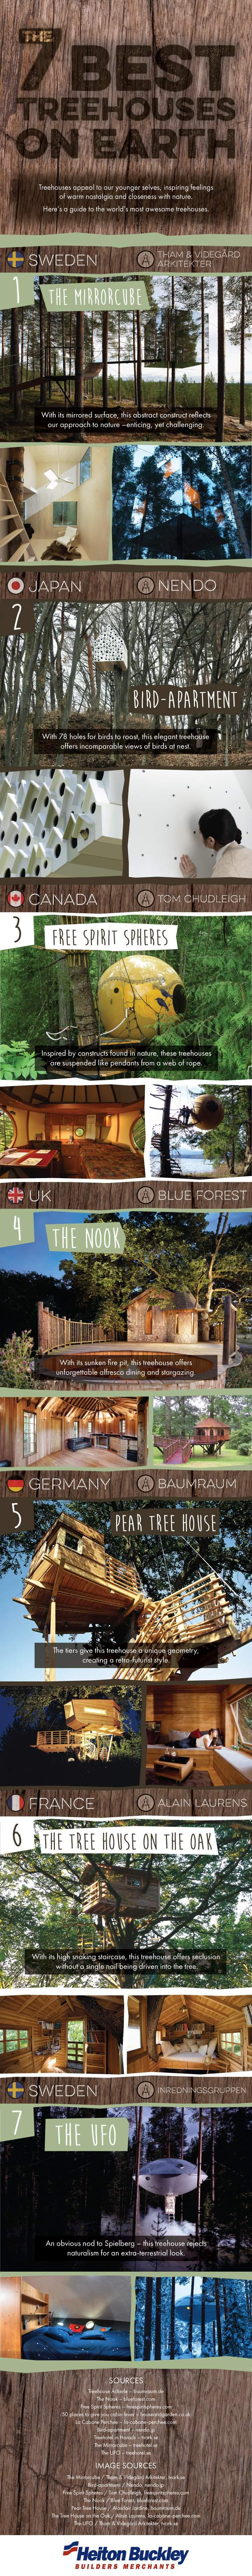 7-best-tree-houses-on-earth